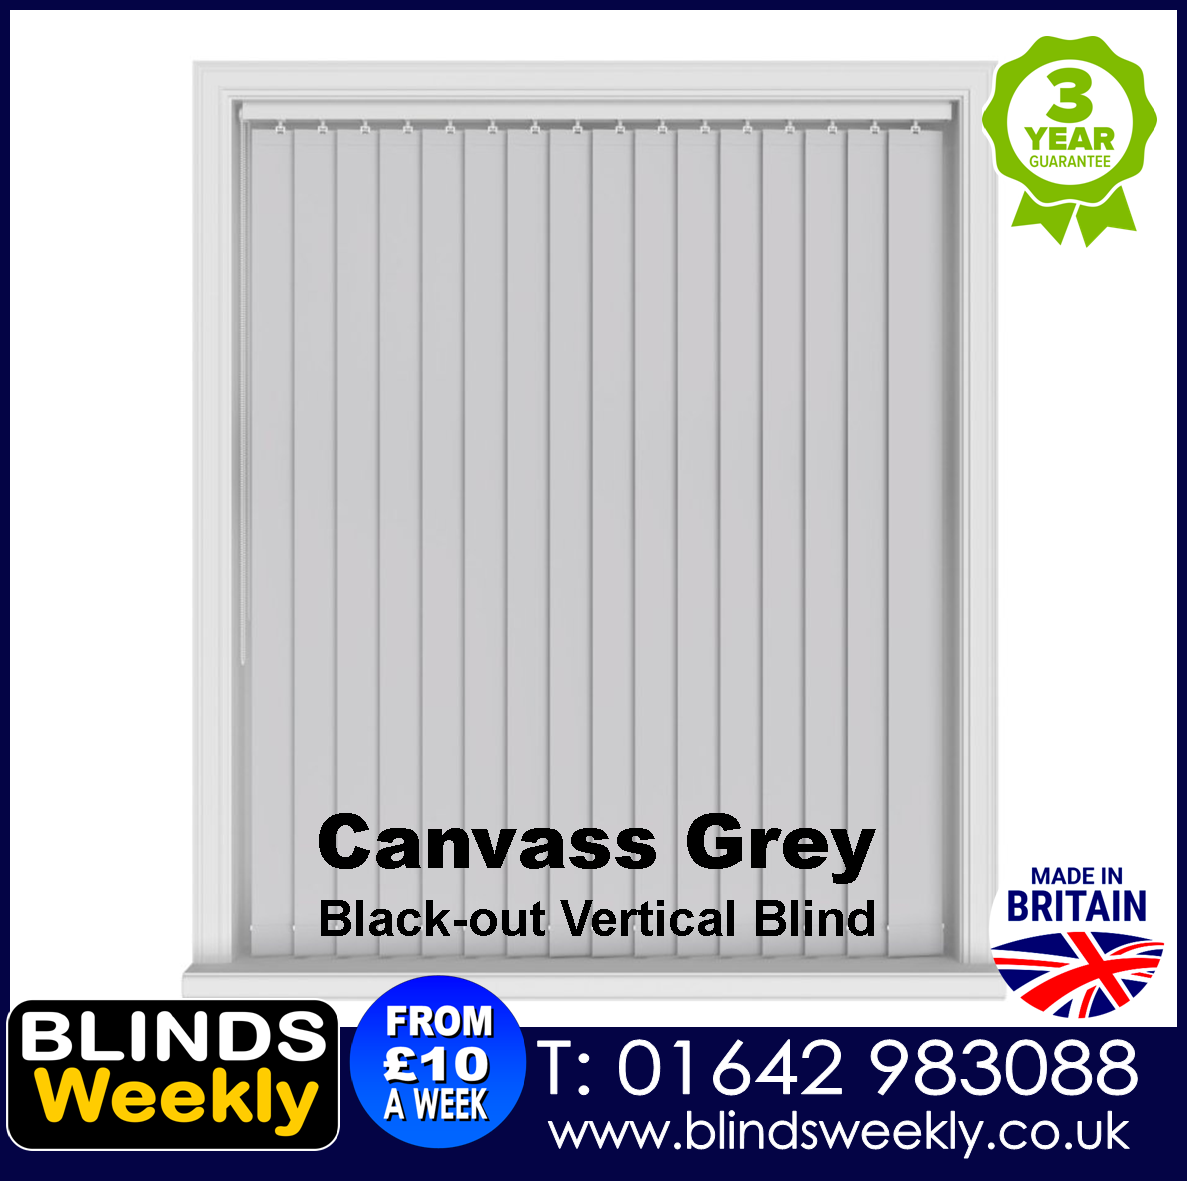 Blinds Weekly Blackout Vertical Blind - Canvass Grey